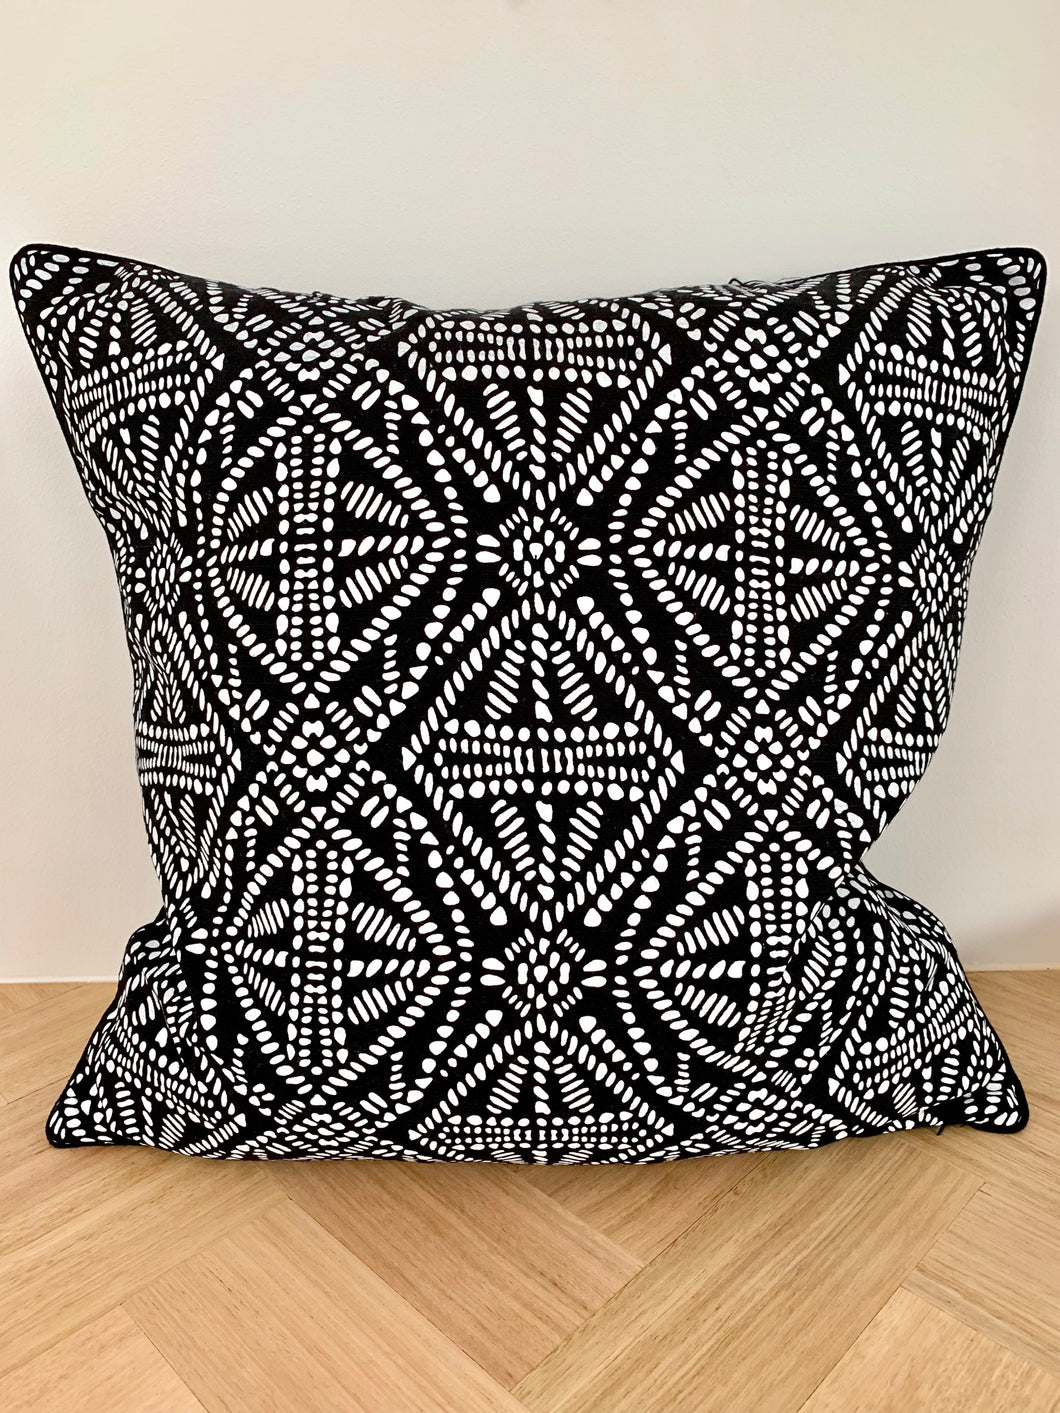 Rhapsody Cushion Cover